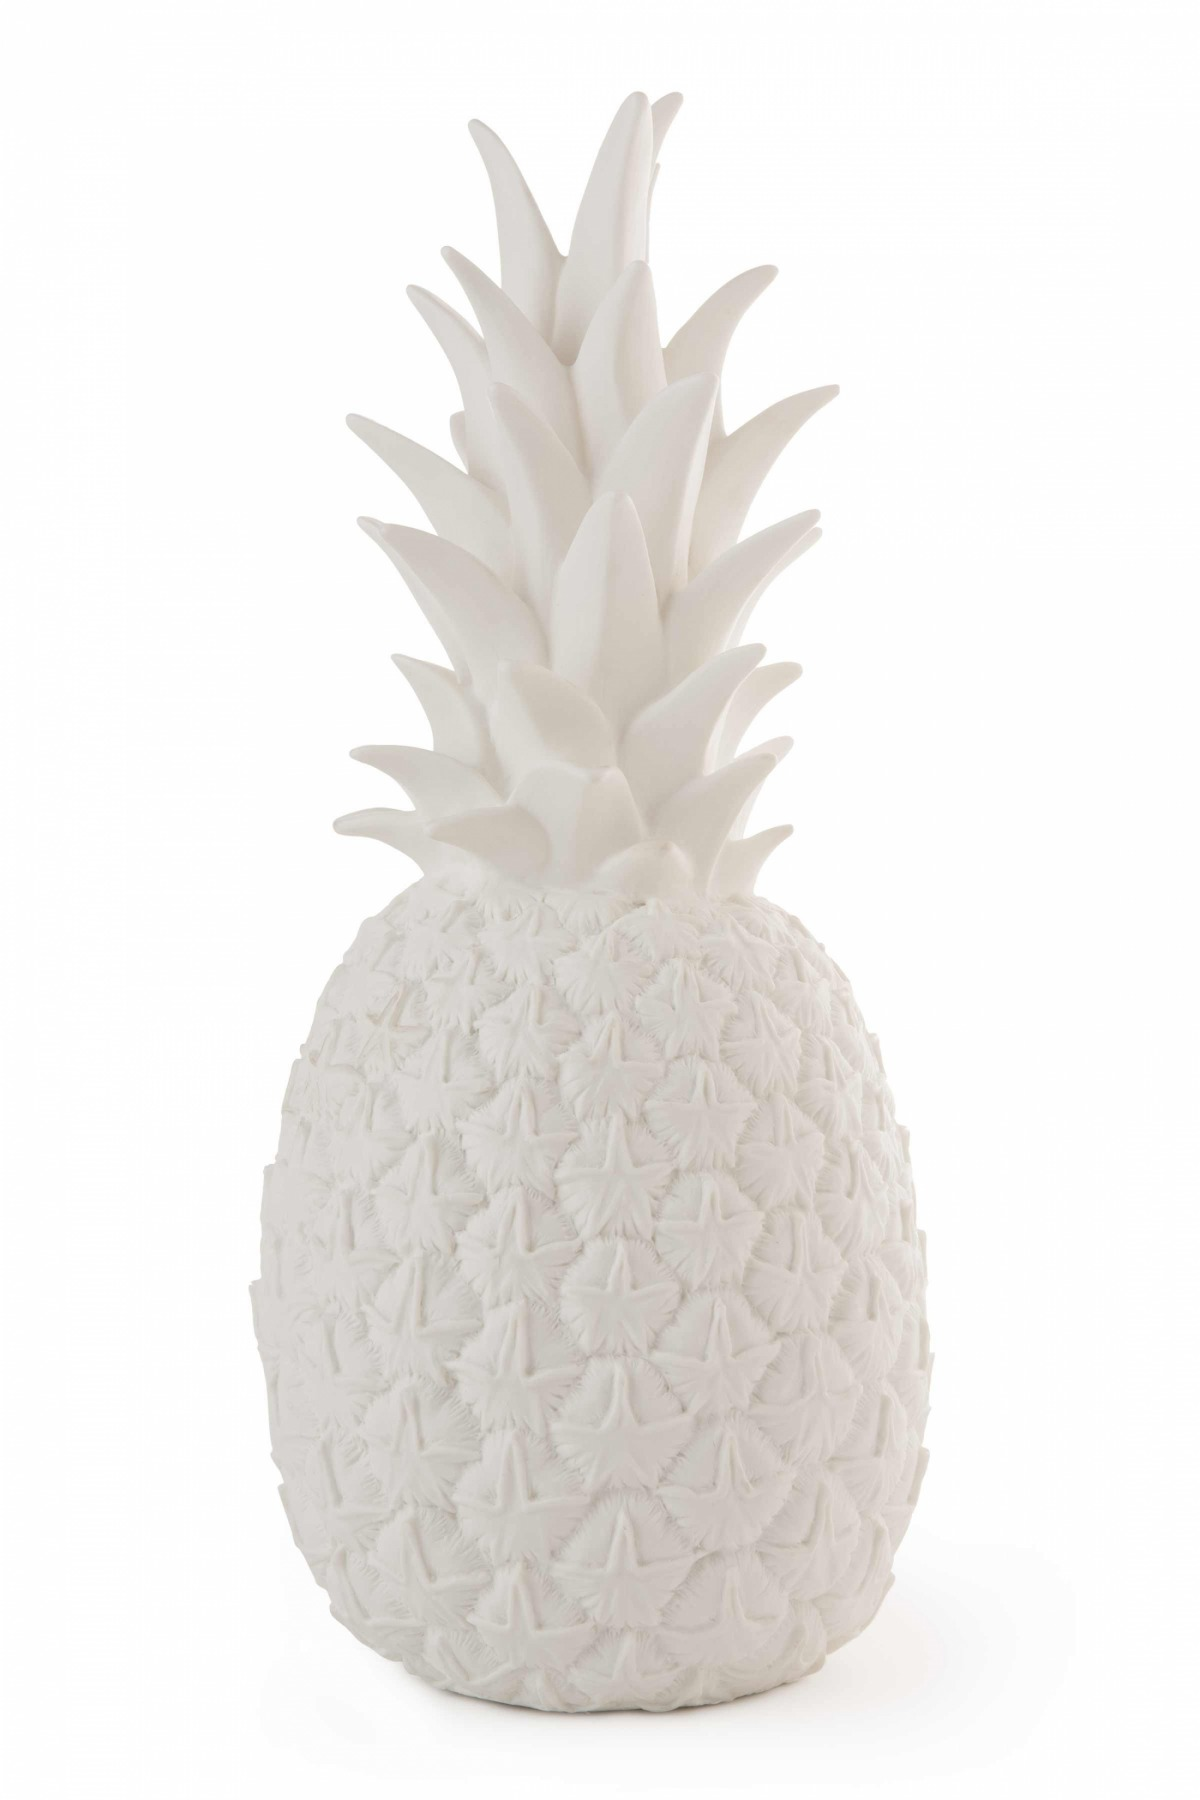 ANANAS LIGHT PINA COLADA WHITE USB- - 1